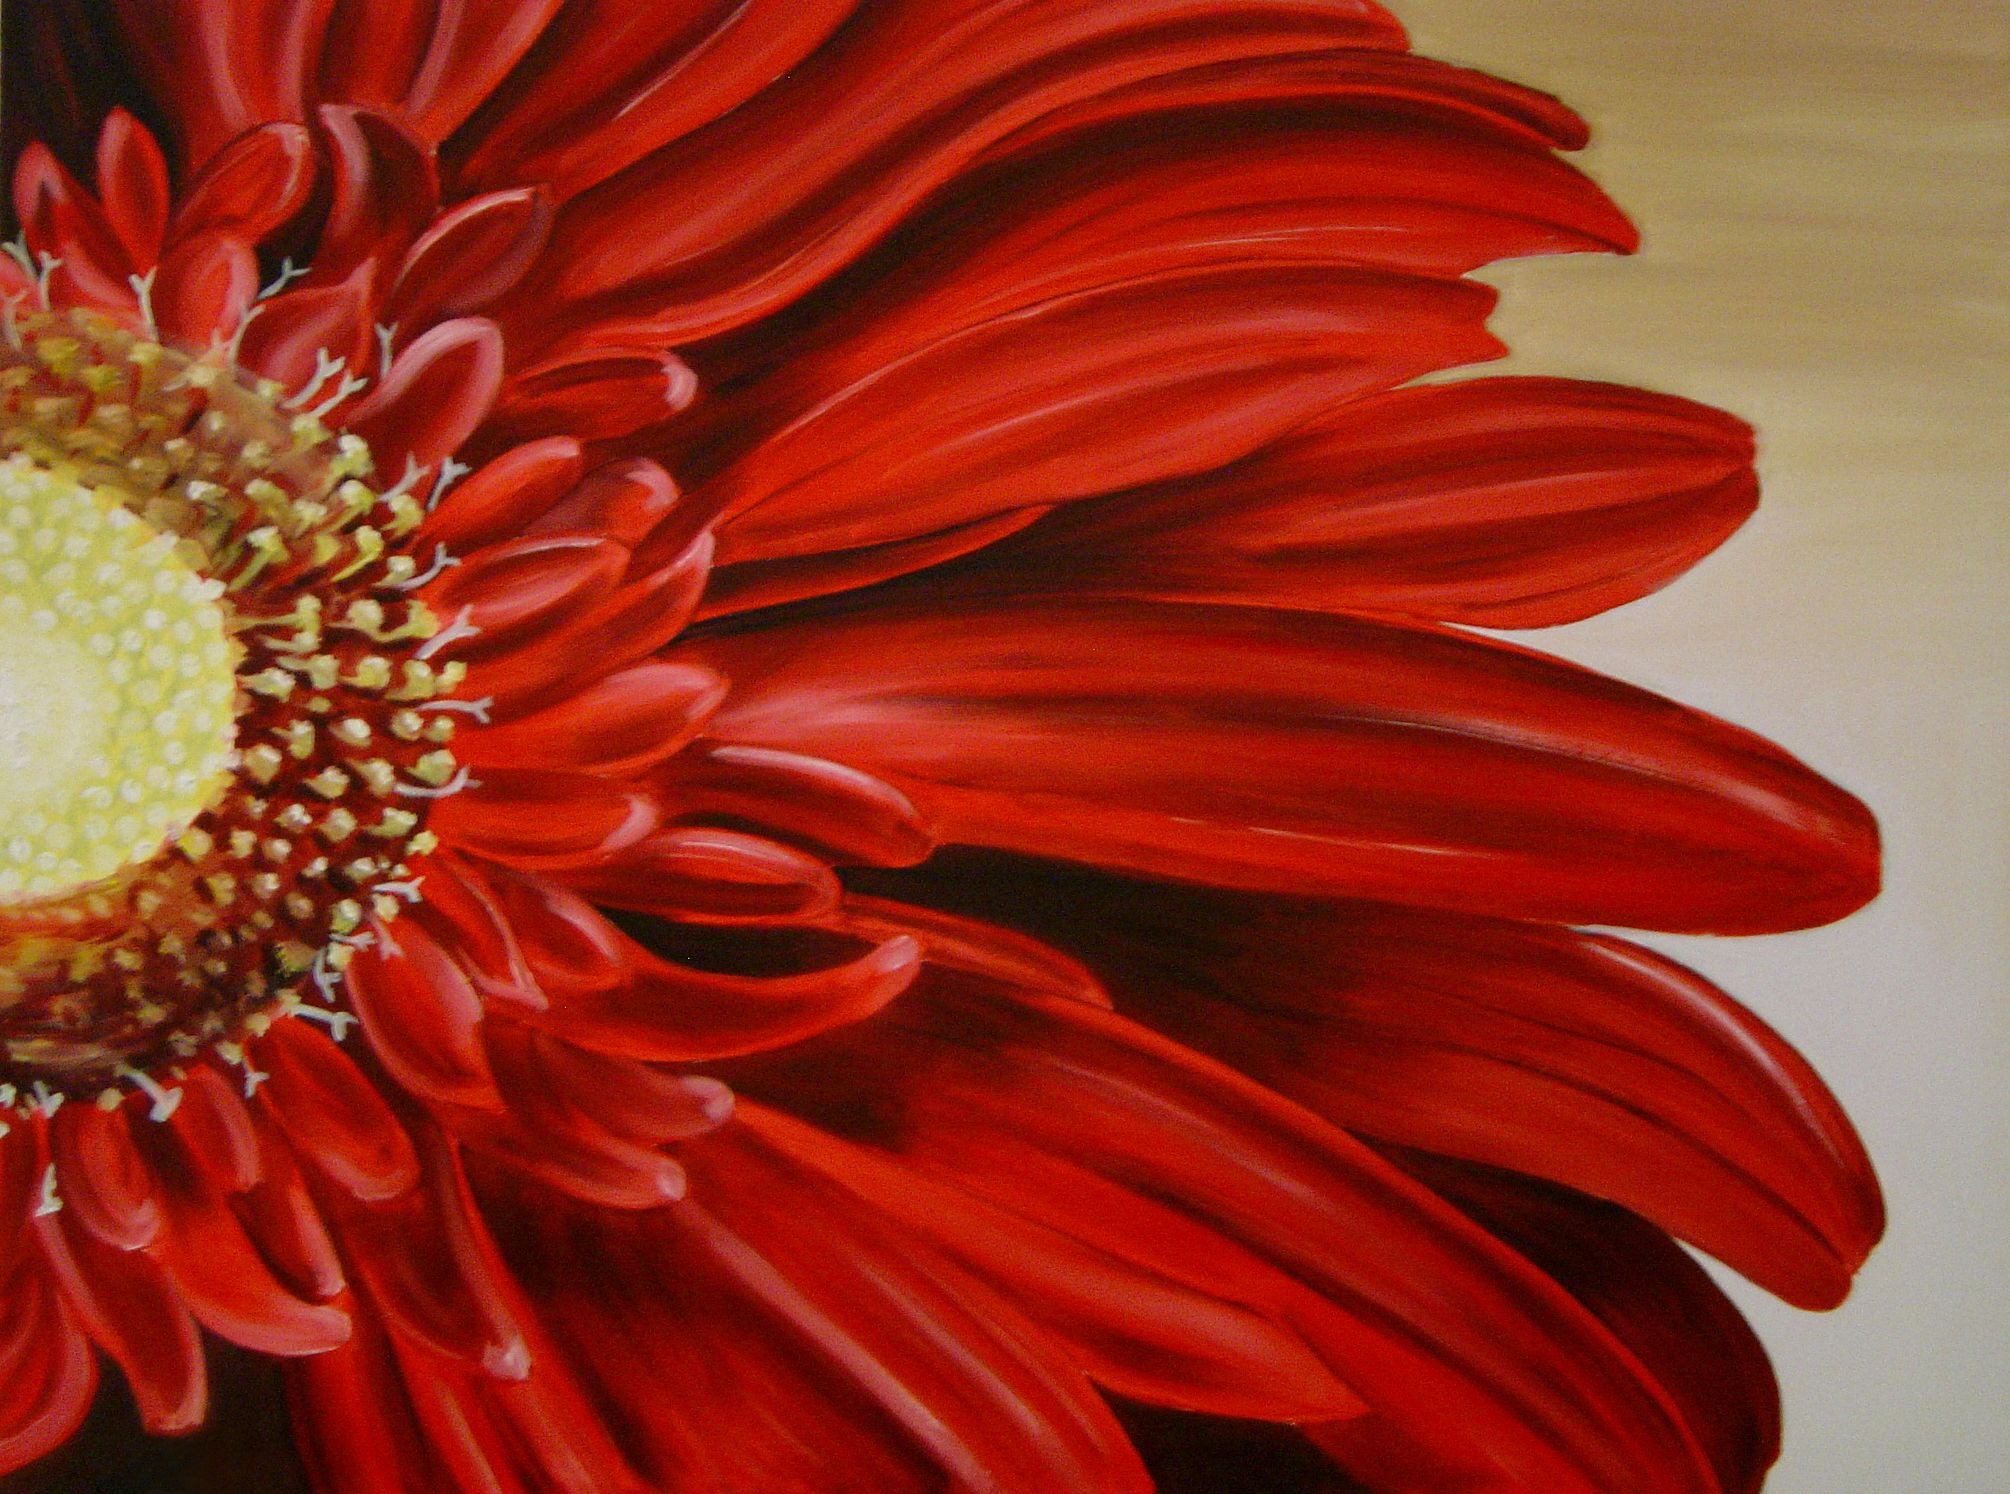 I Love All Flowers I Am Not Picky However The Gerbera Daisy Is